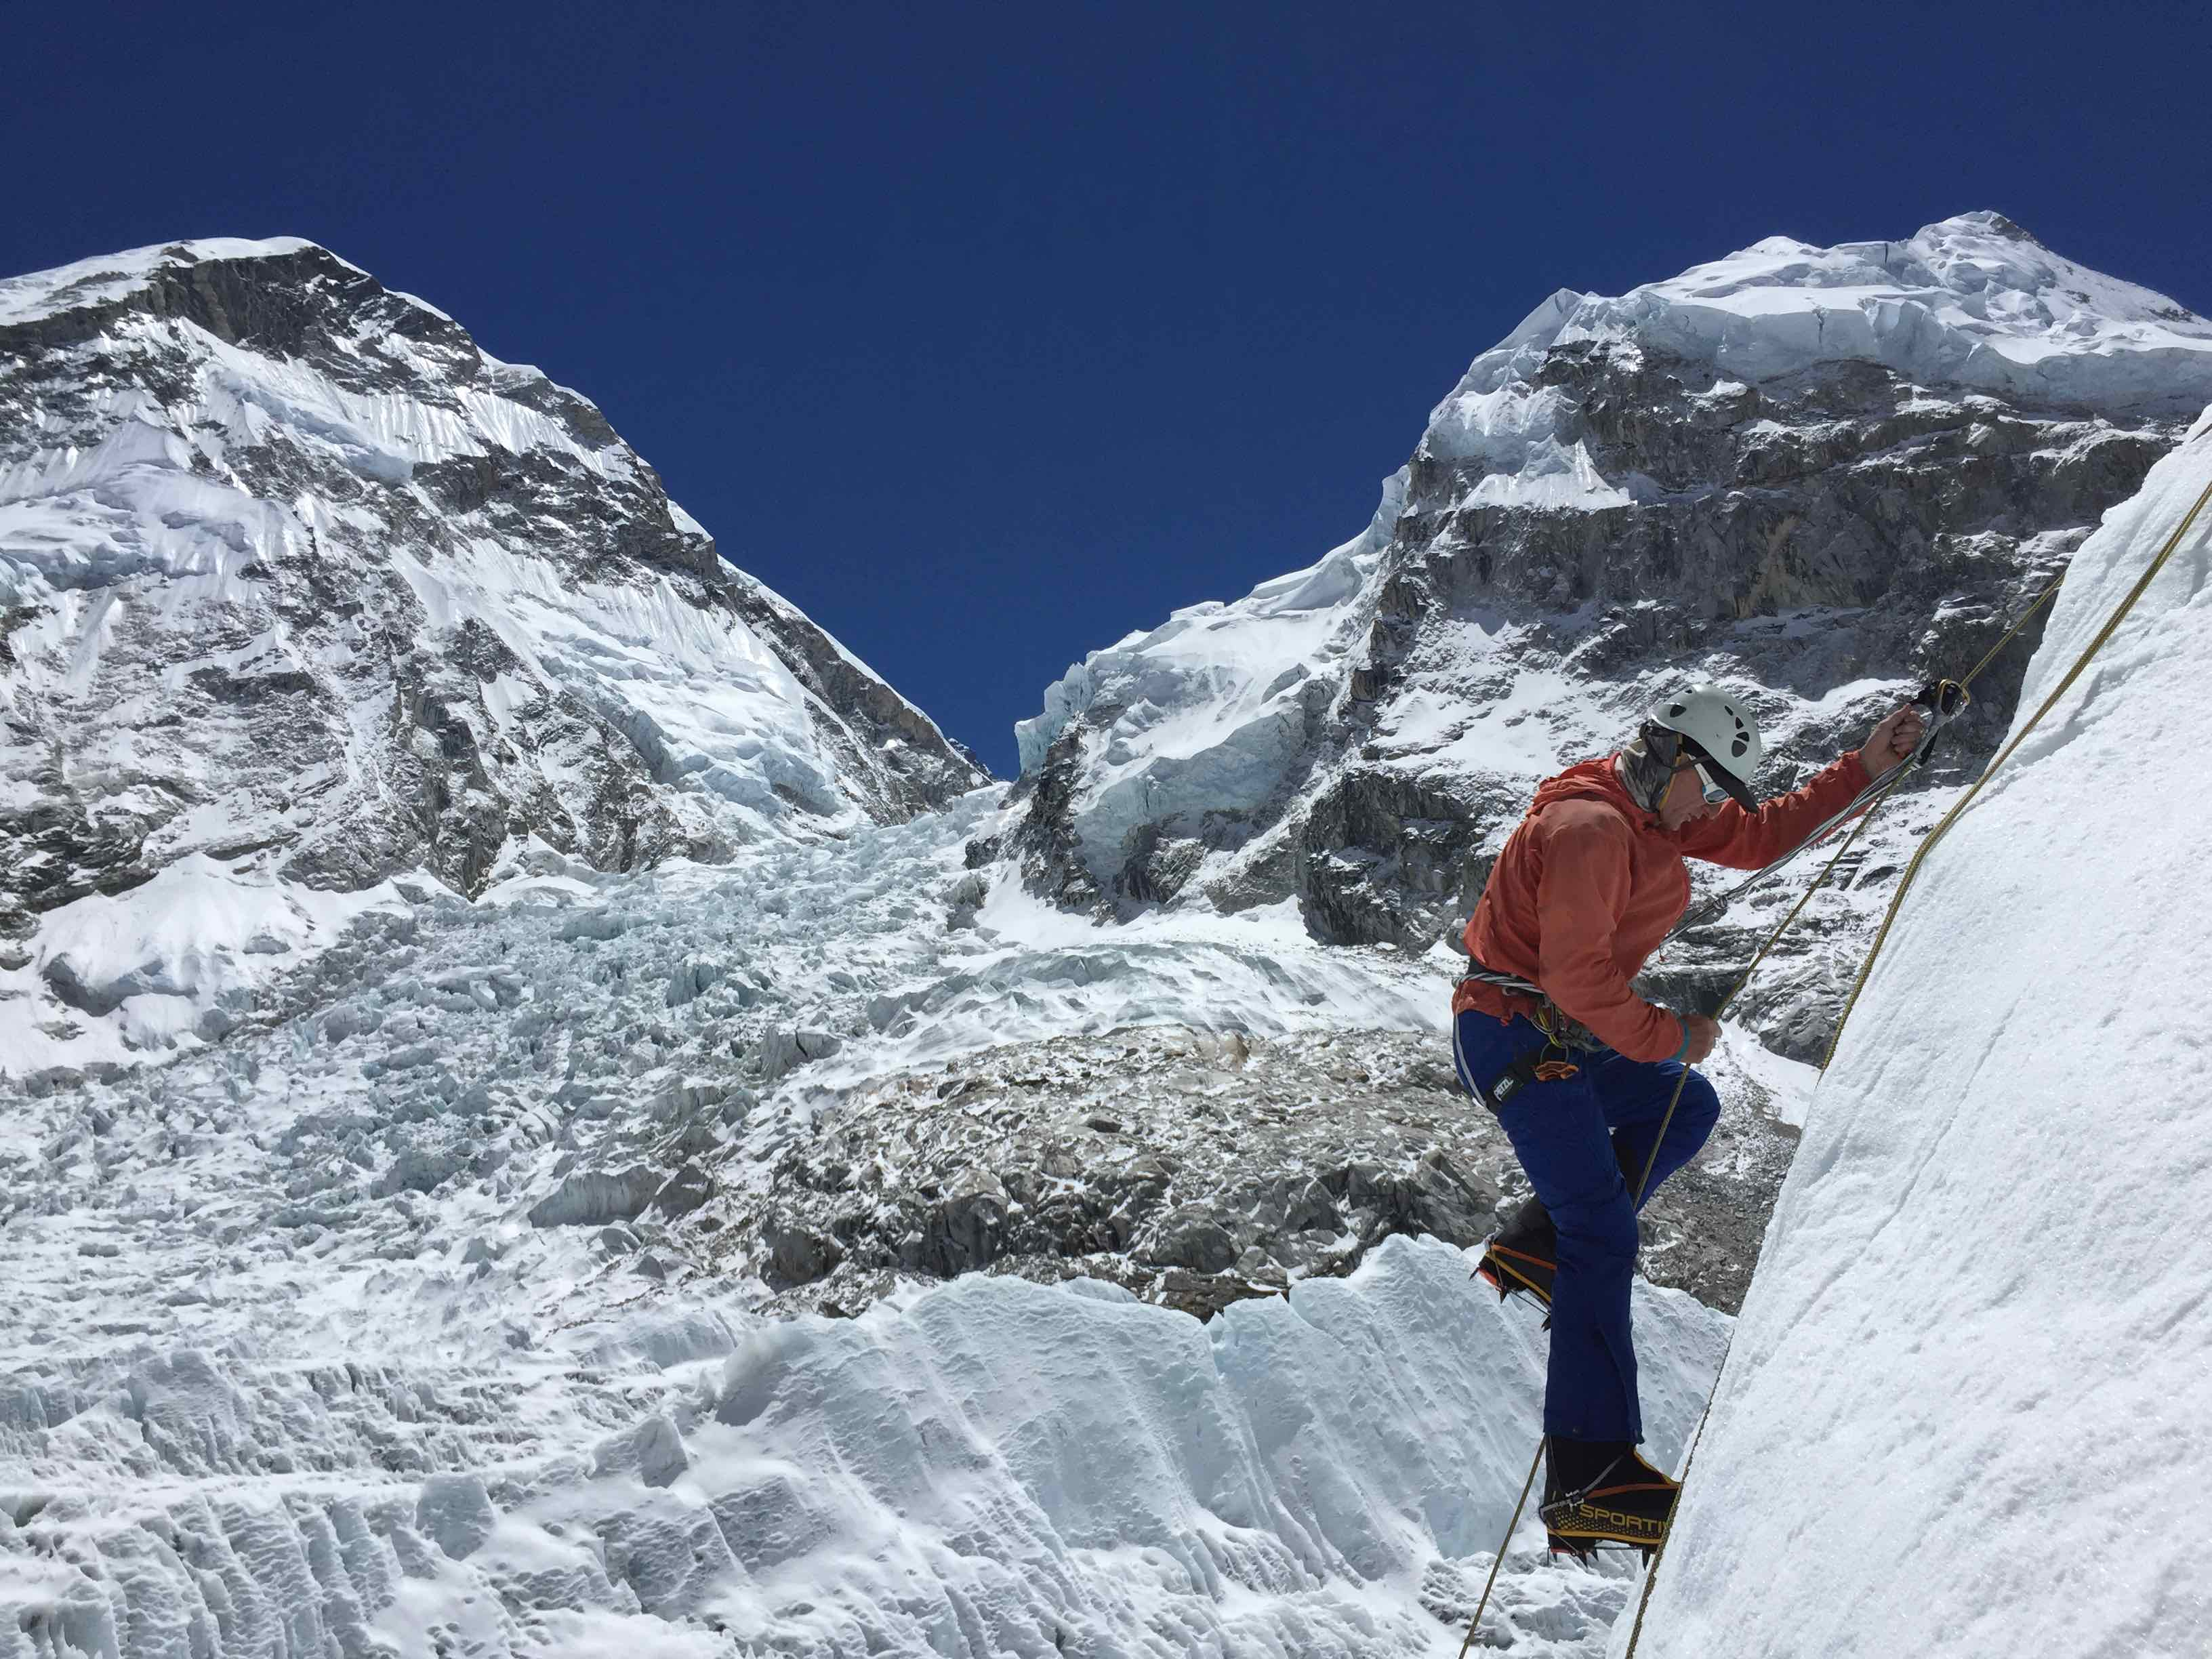 April 2018 – Climbing the Seven Summits with Mike Hamill